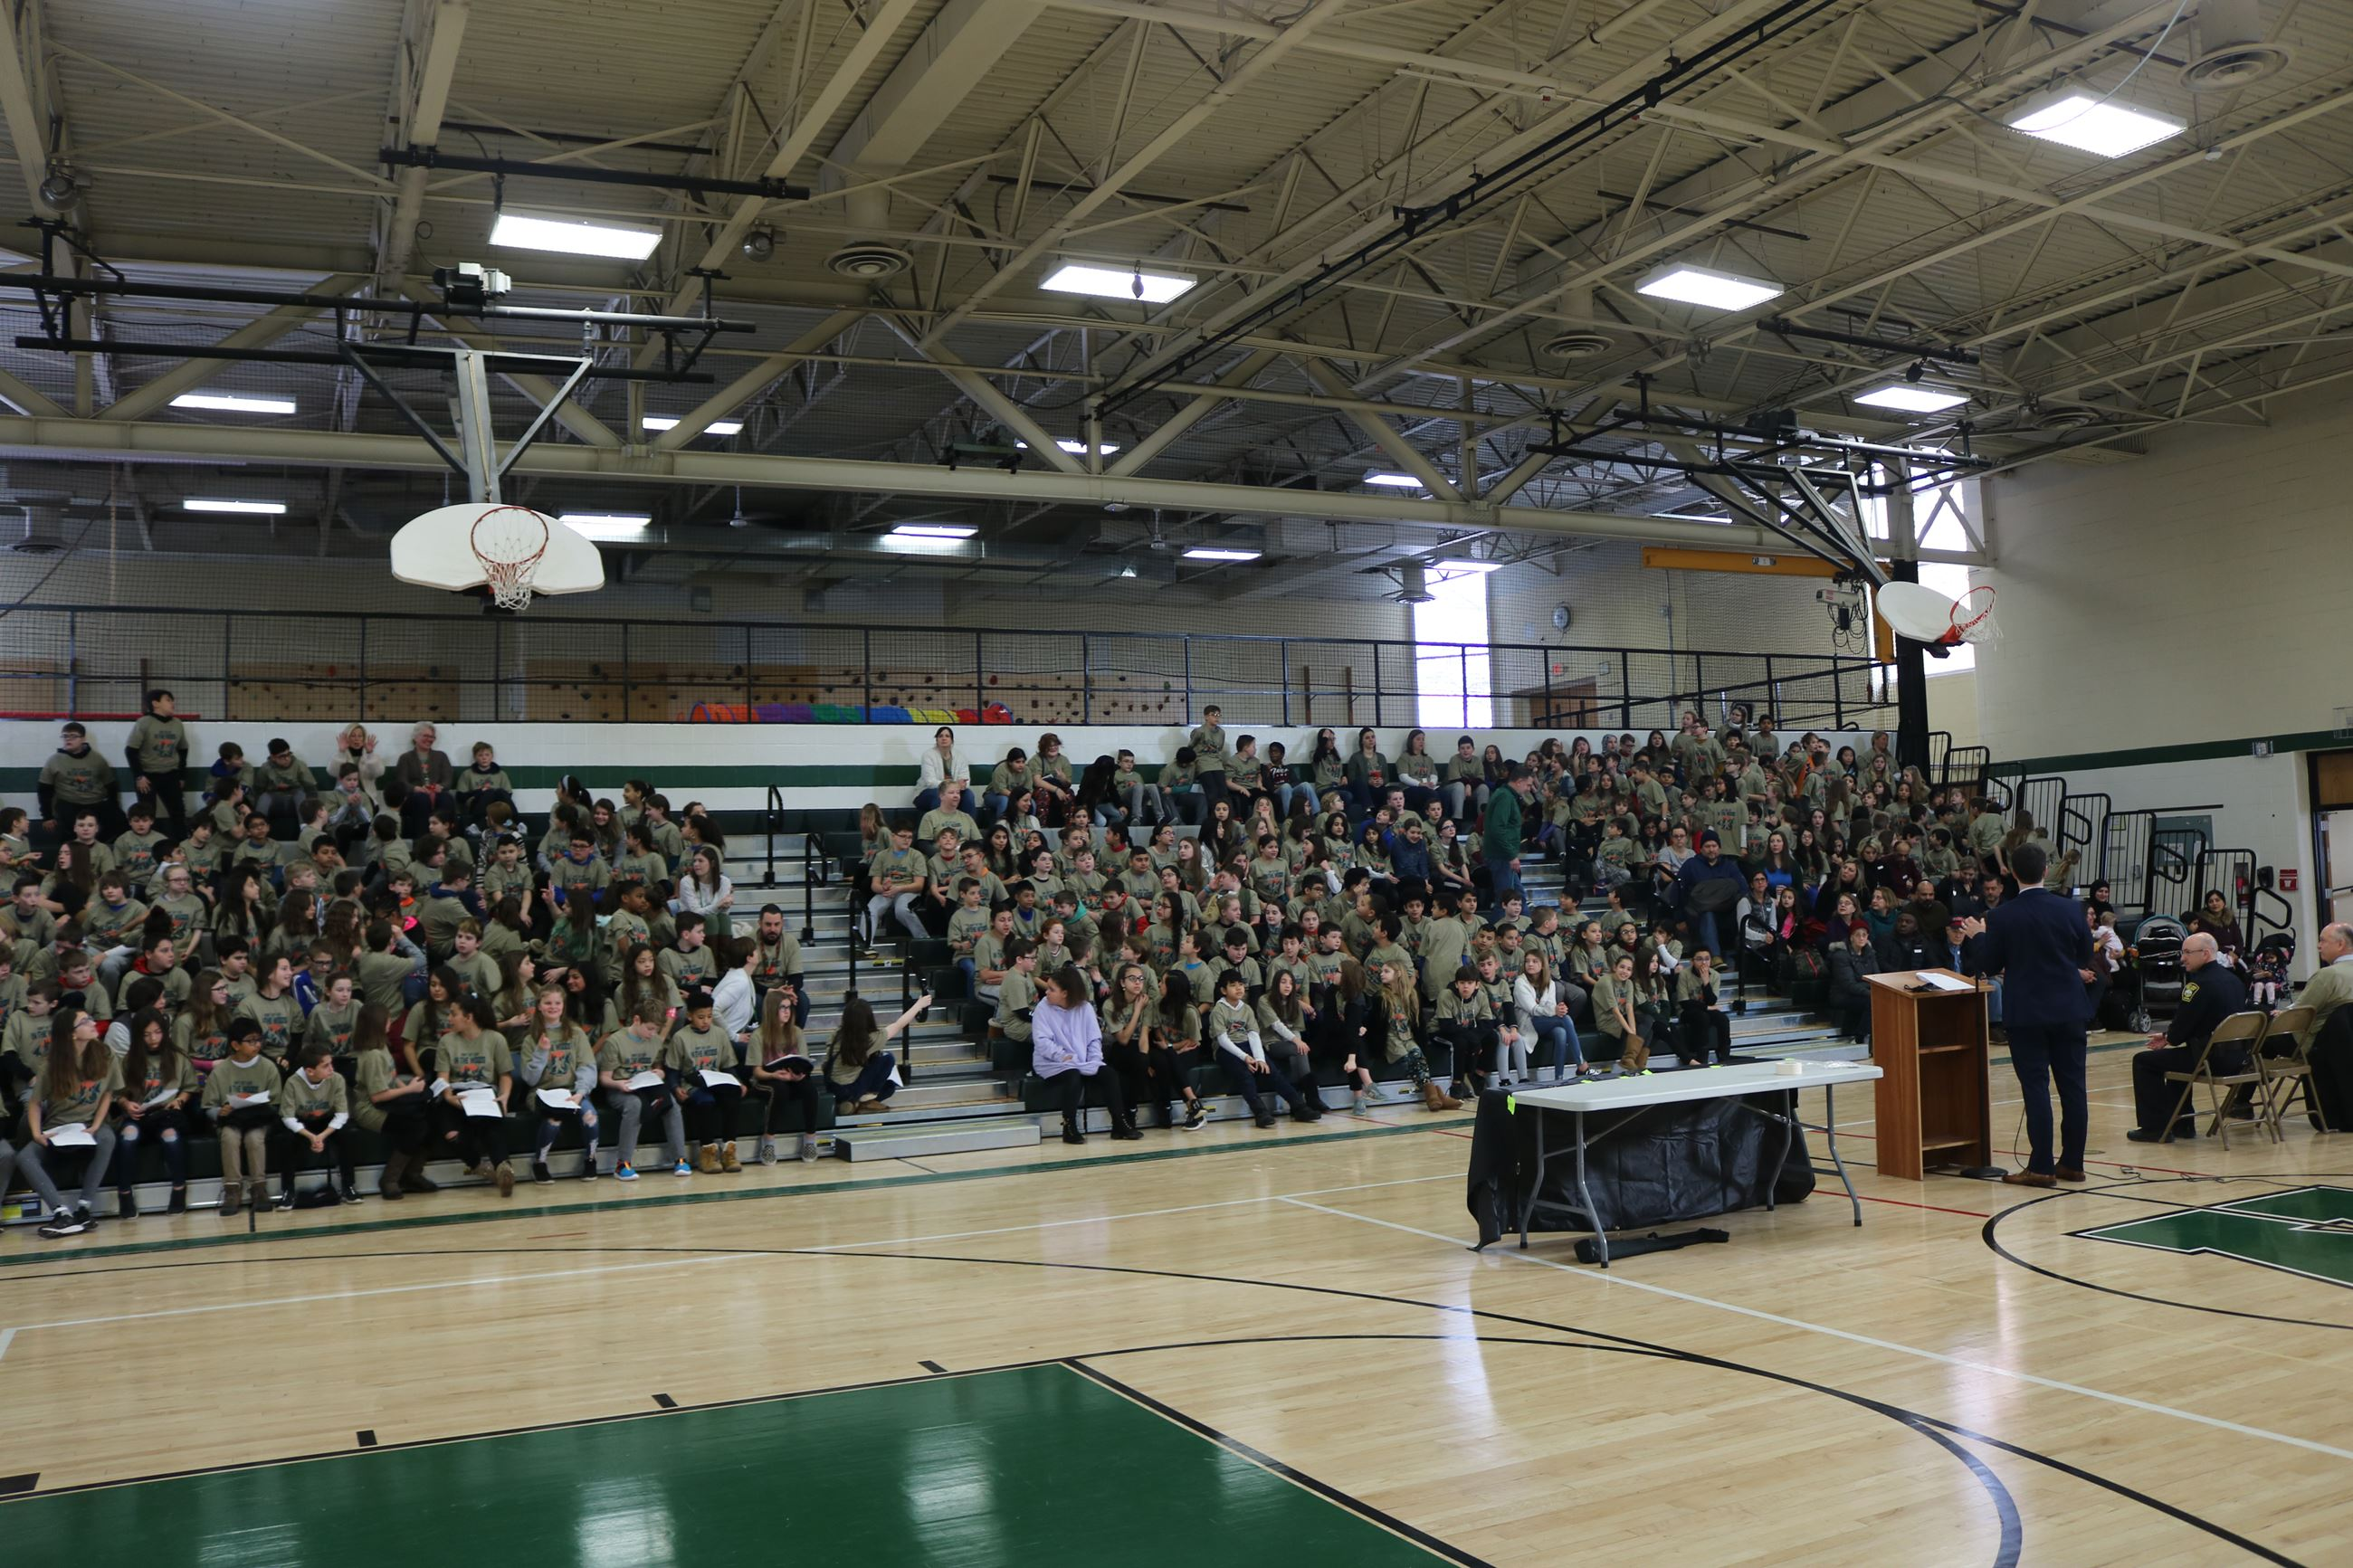 Crowd of students at D.A.R.E. graduation ceremony.